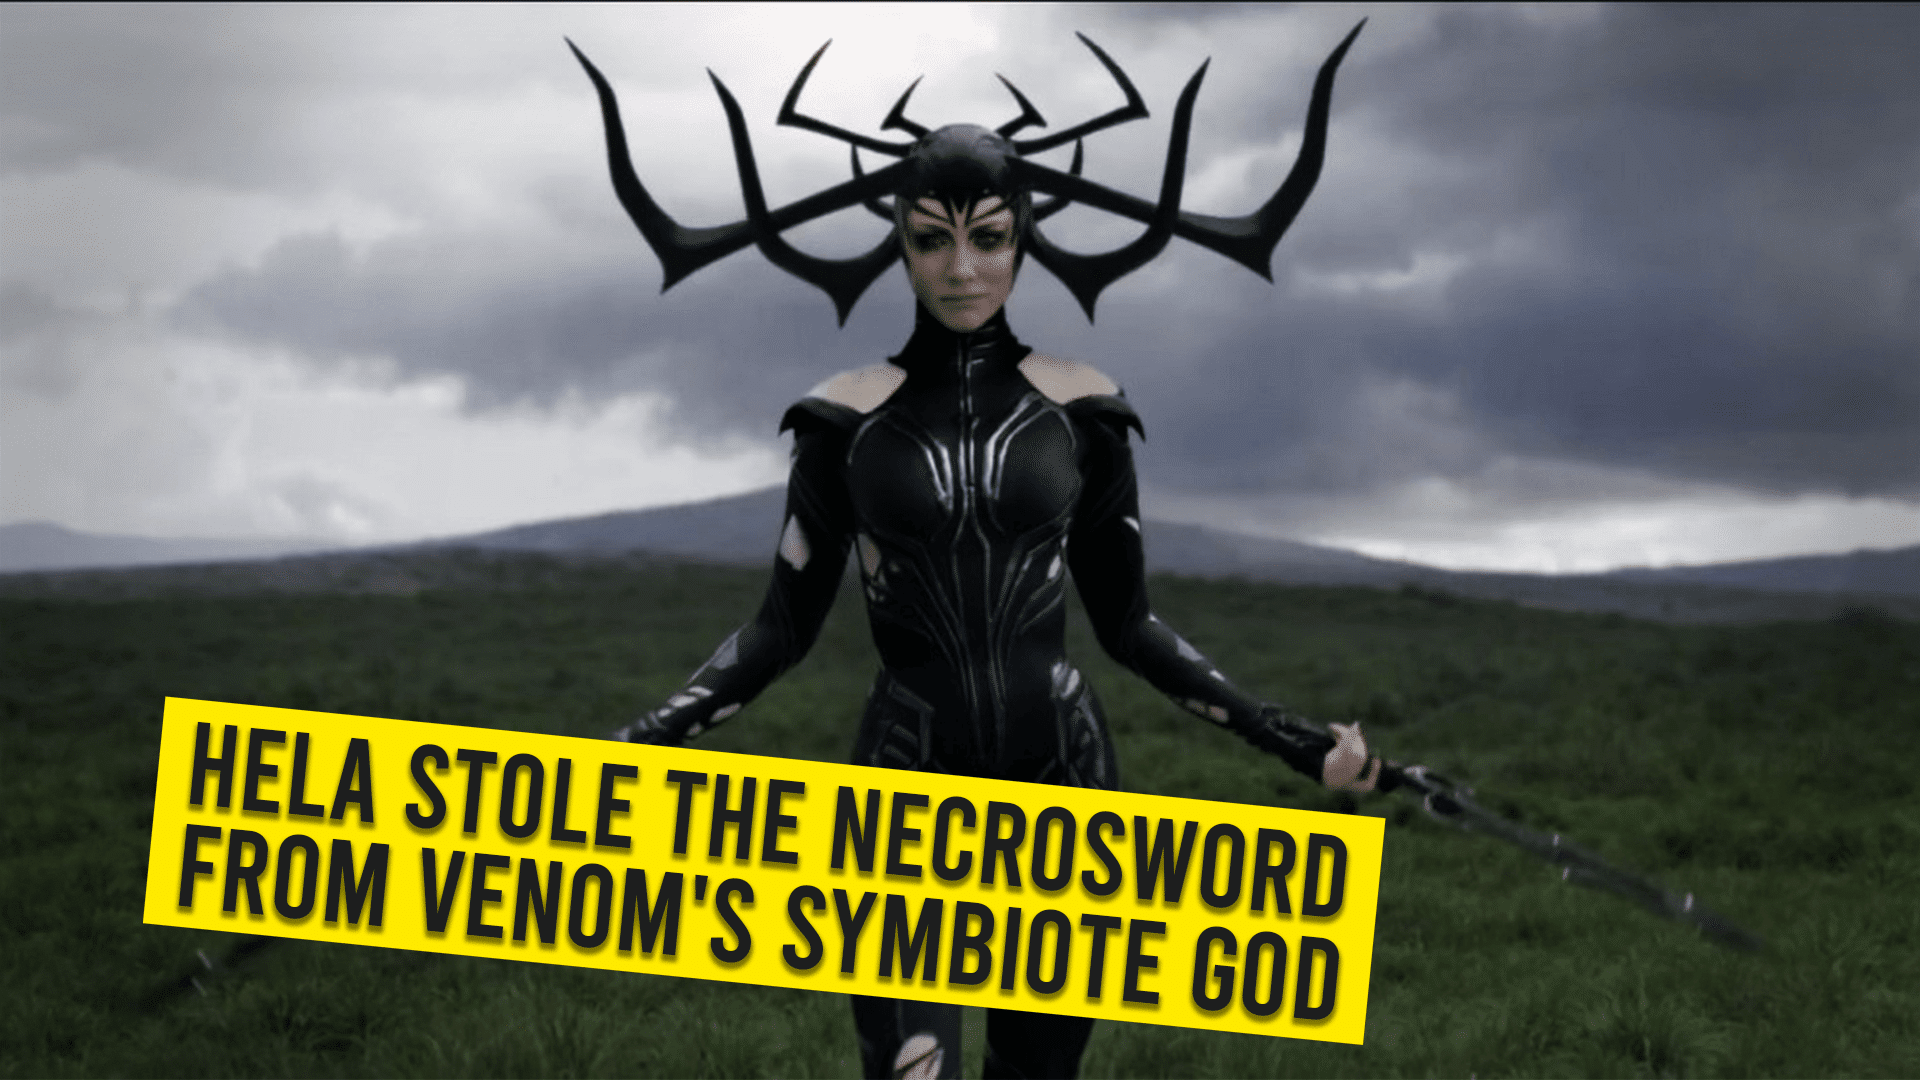 Hela Stole the Necrosword from Venom's Symbiote God